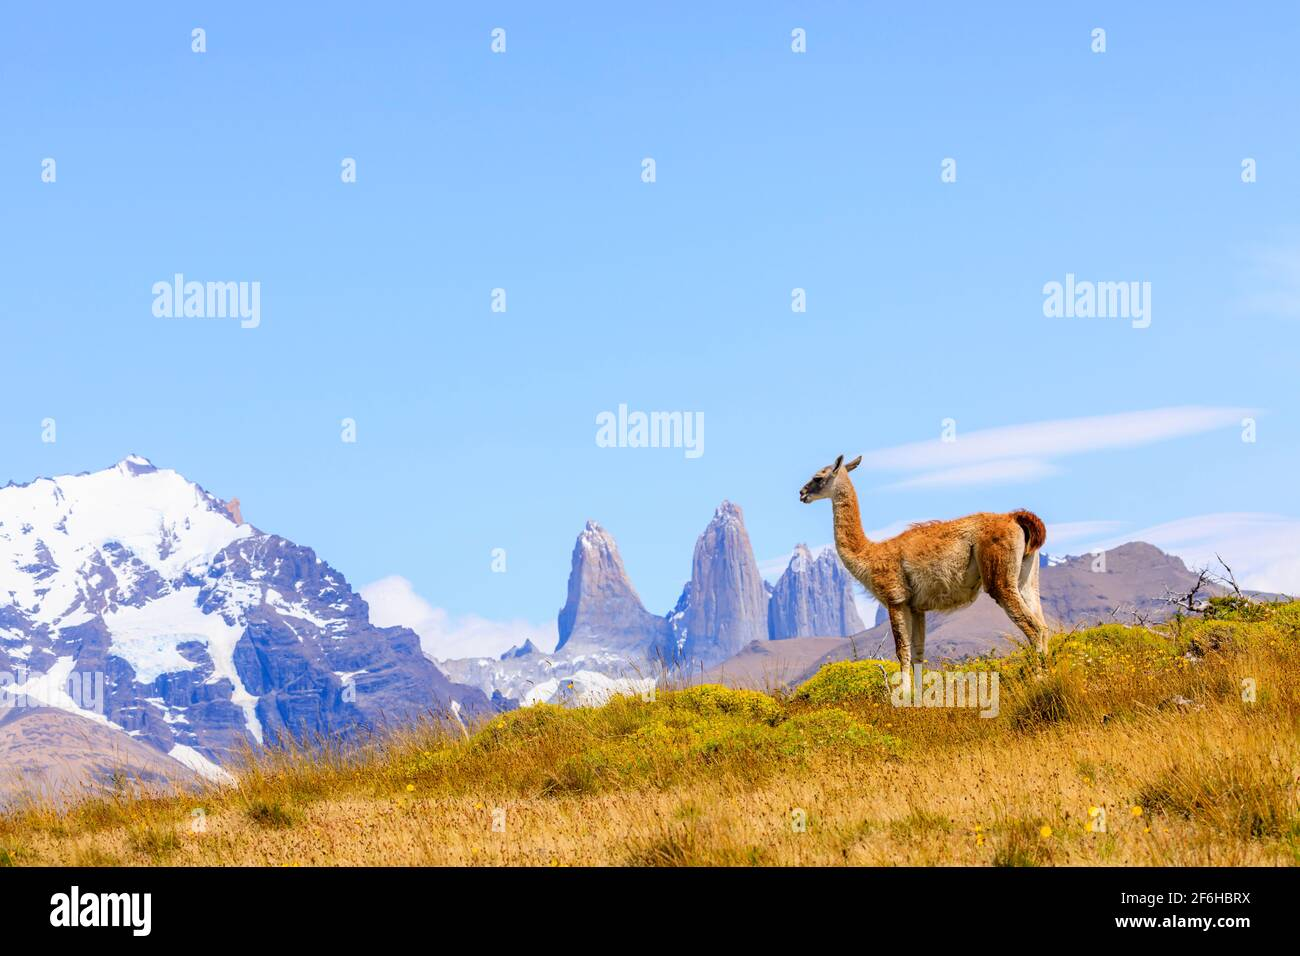 Guanaco (Lama guanicoe) standing on a hill by the Torres del Paine towers, Torres del Paine National Park, Ultima Esperanza, Patagonia, southern Chile Stock Photo